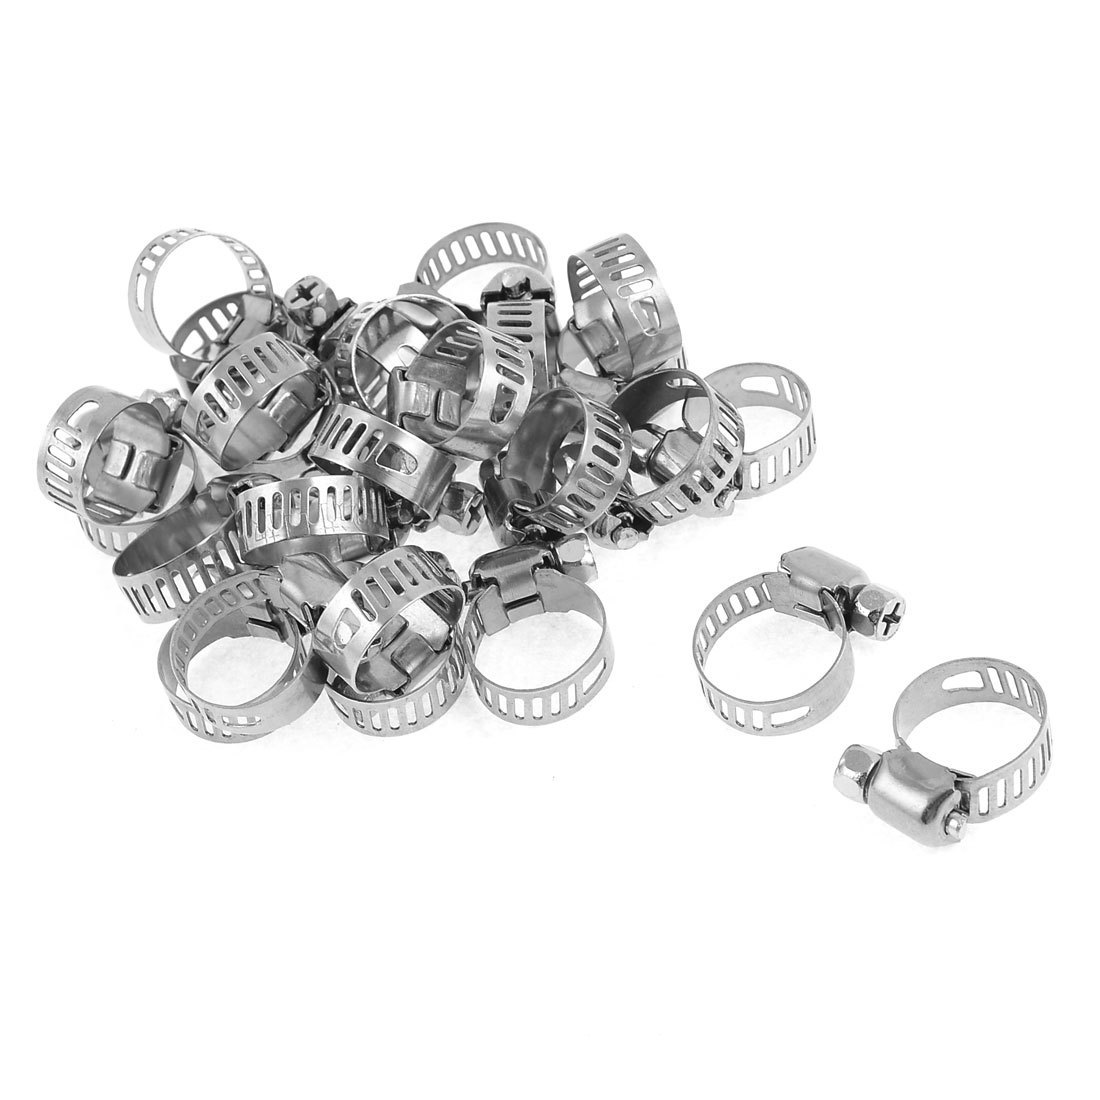 25 Pcs 9-16mm Wide Metal Adjustable Hose Clamp Clips Fastener